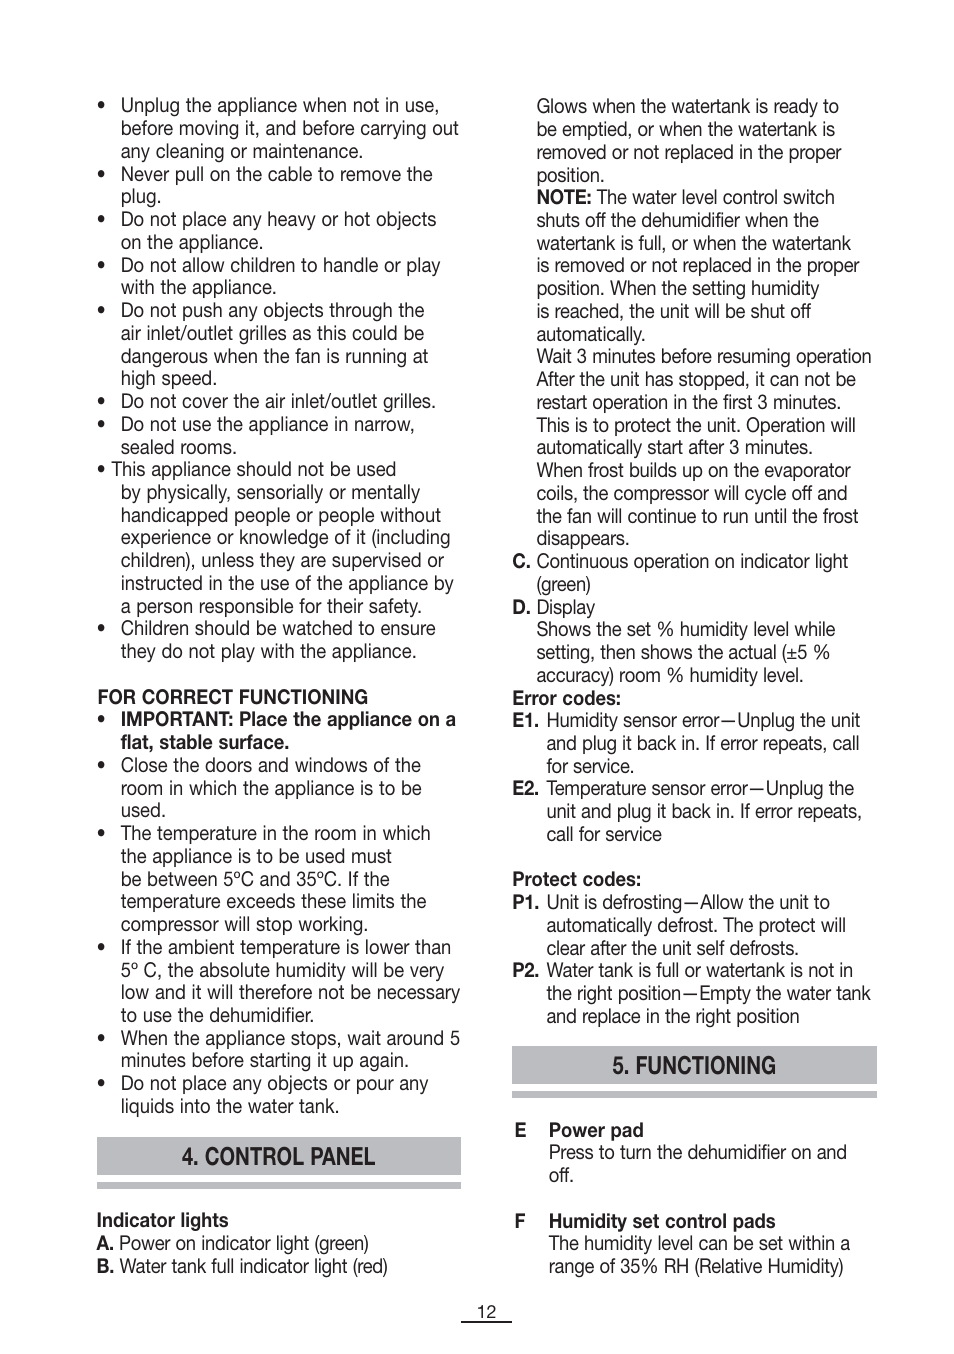 Control panel, Functioning | Fagor DH-10D User Manual | Page 13 / 54